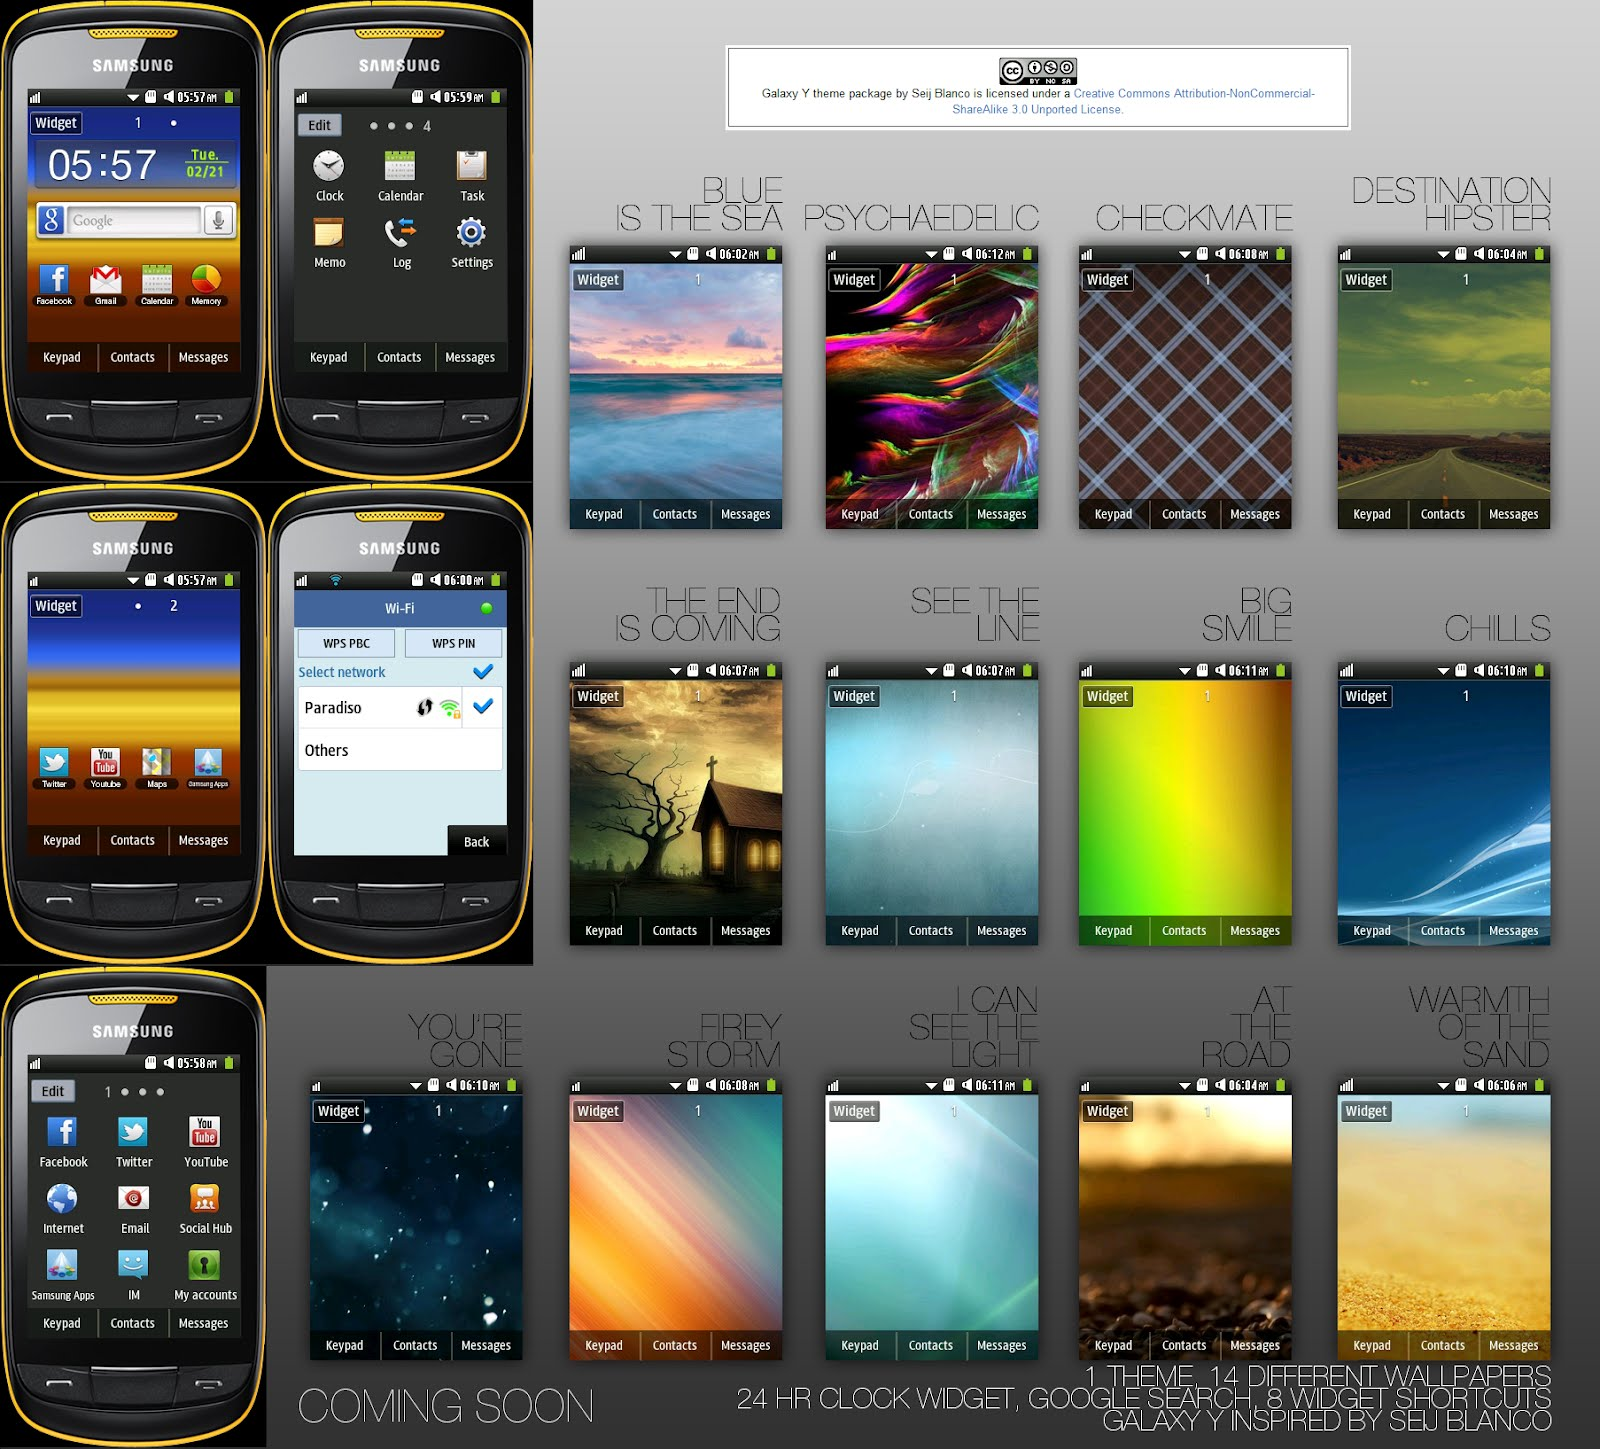 Samsung Corby 2 Theme  Samsung Galaxy Y Package By Seij Blanco